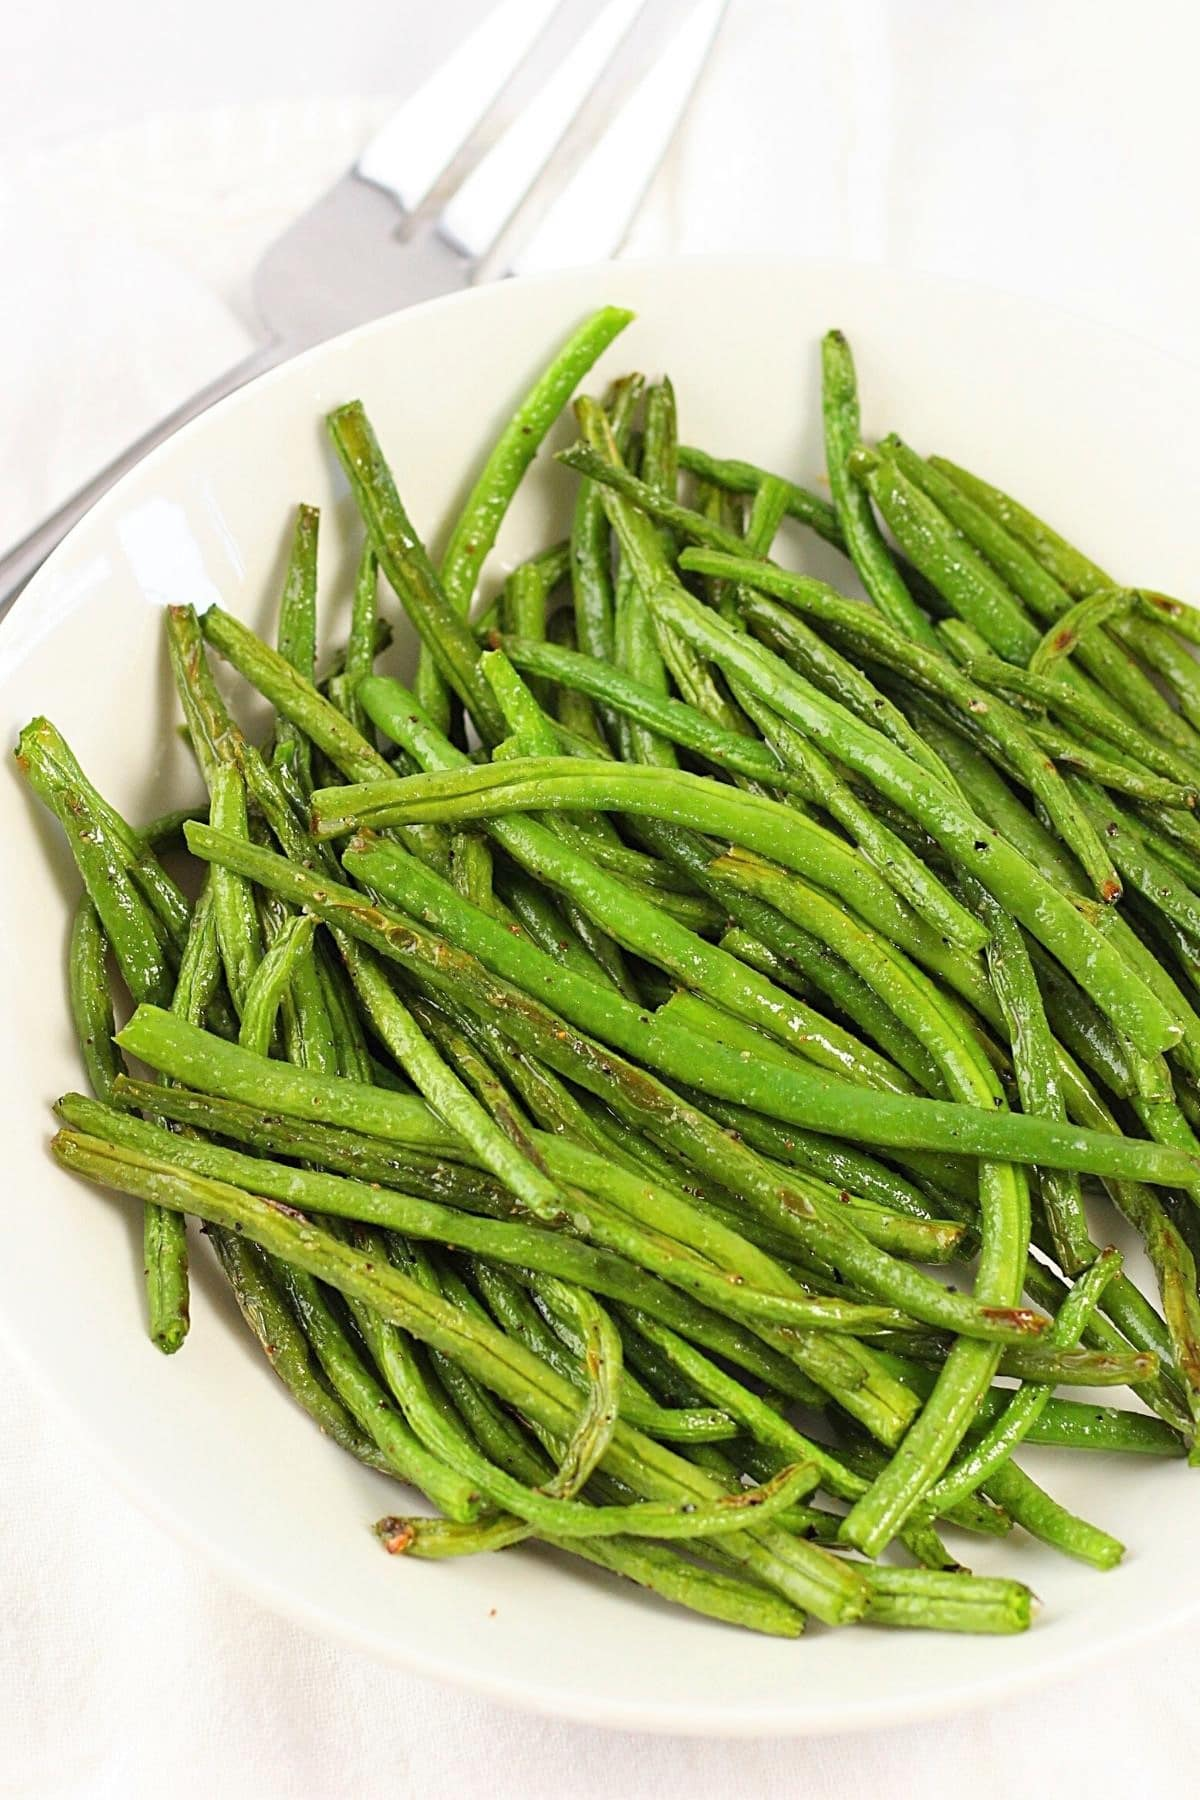 oven-roasted green beans on a white plate with a serving fork on the side